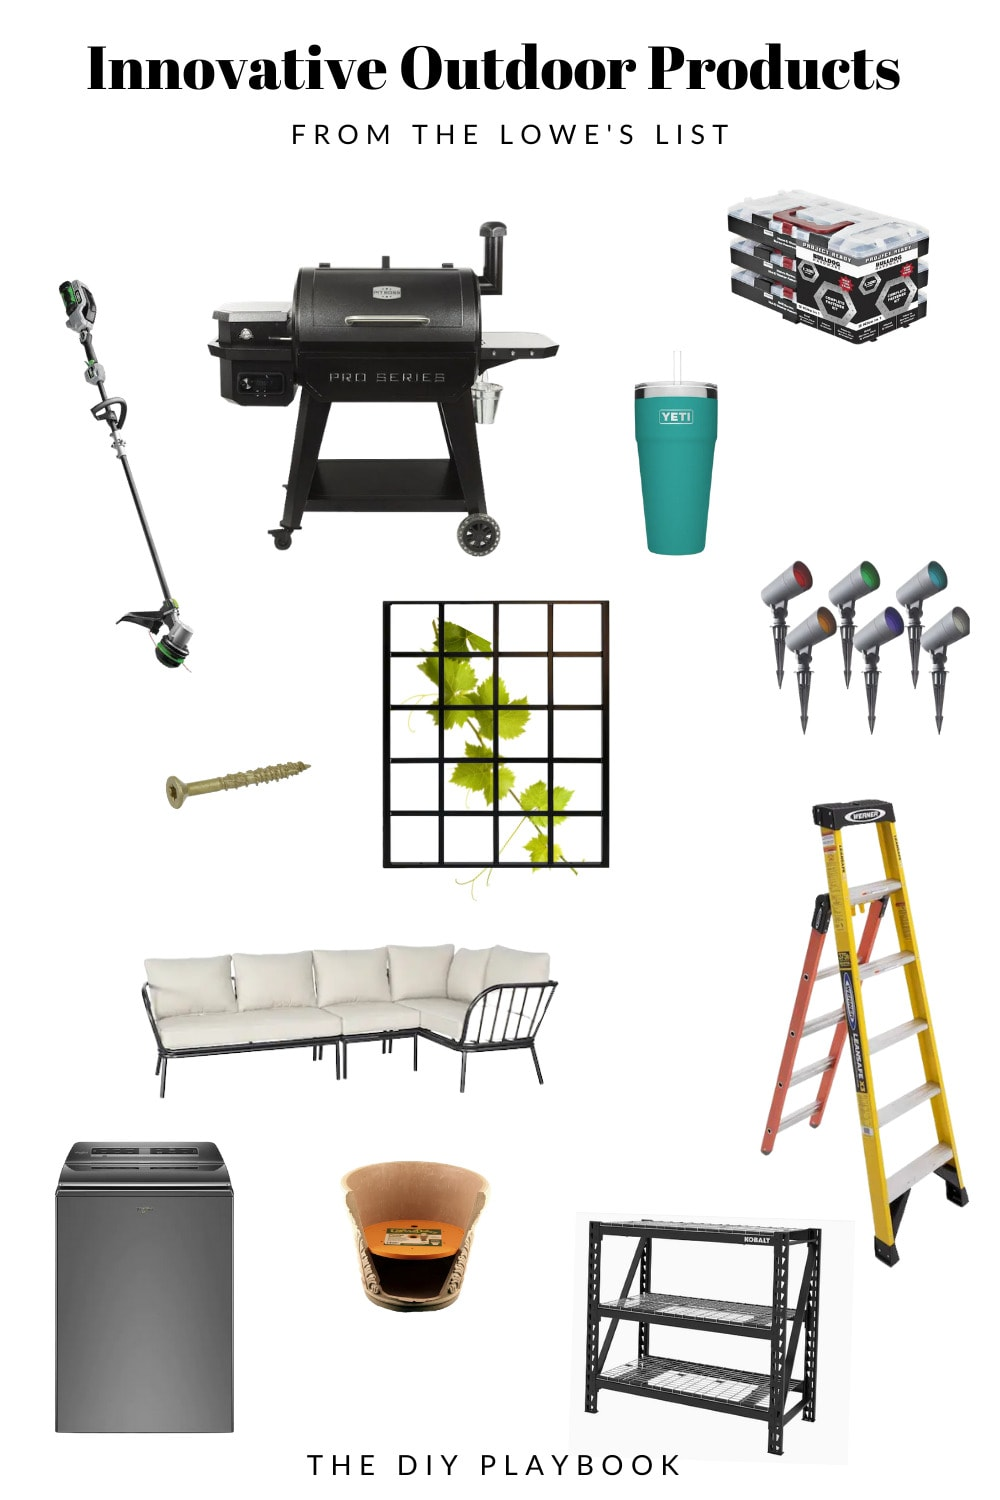 The Lowe's List of Innovative Outdoor Products